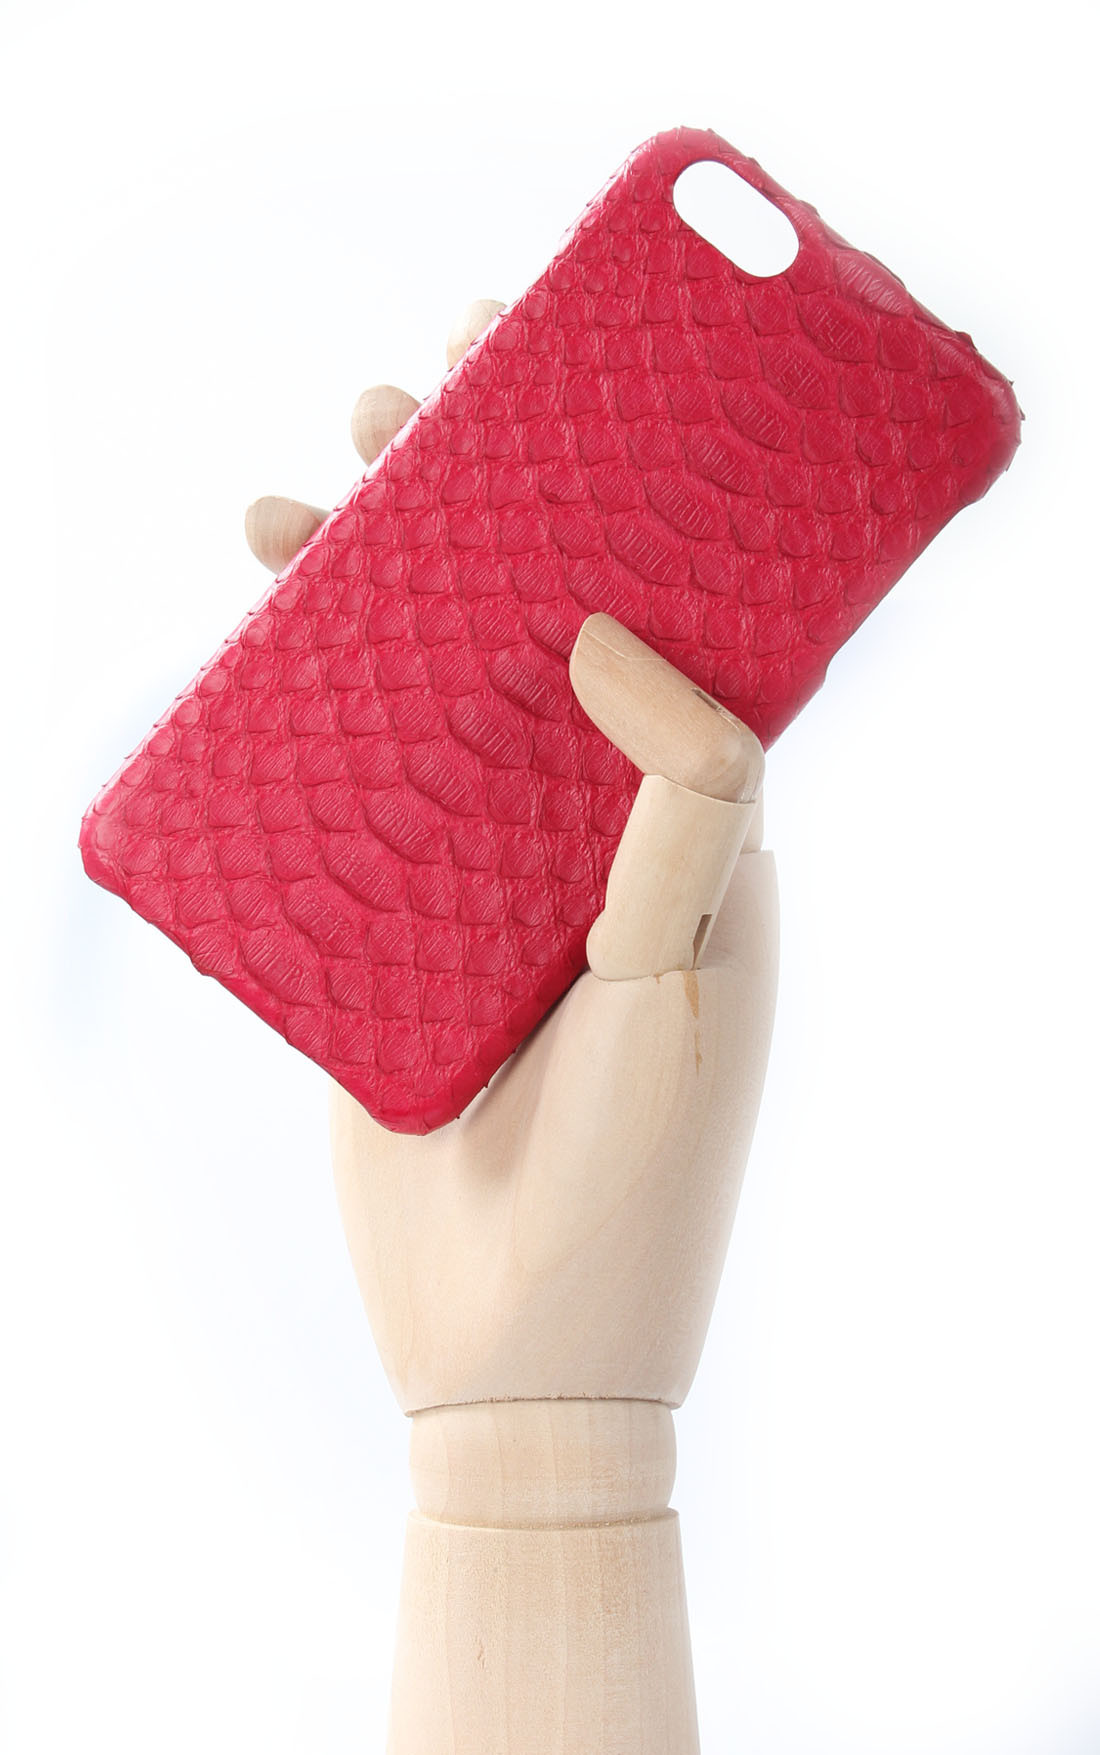 The Case Factory - Real Python Fuxia iPhone 6 Plus (102158)